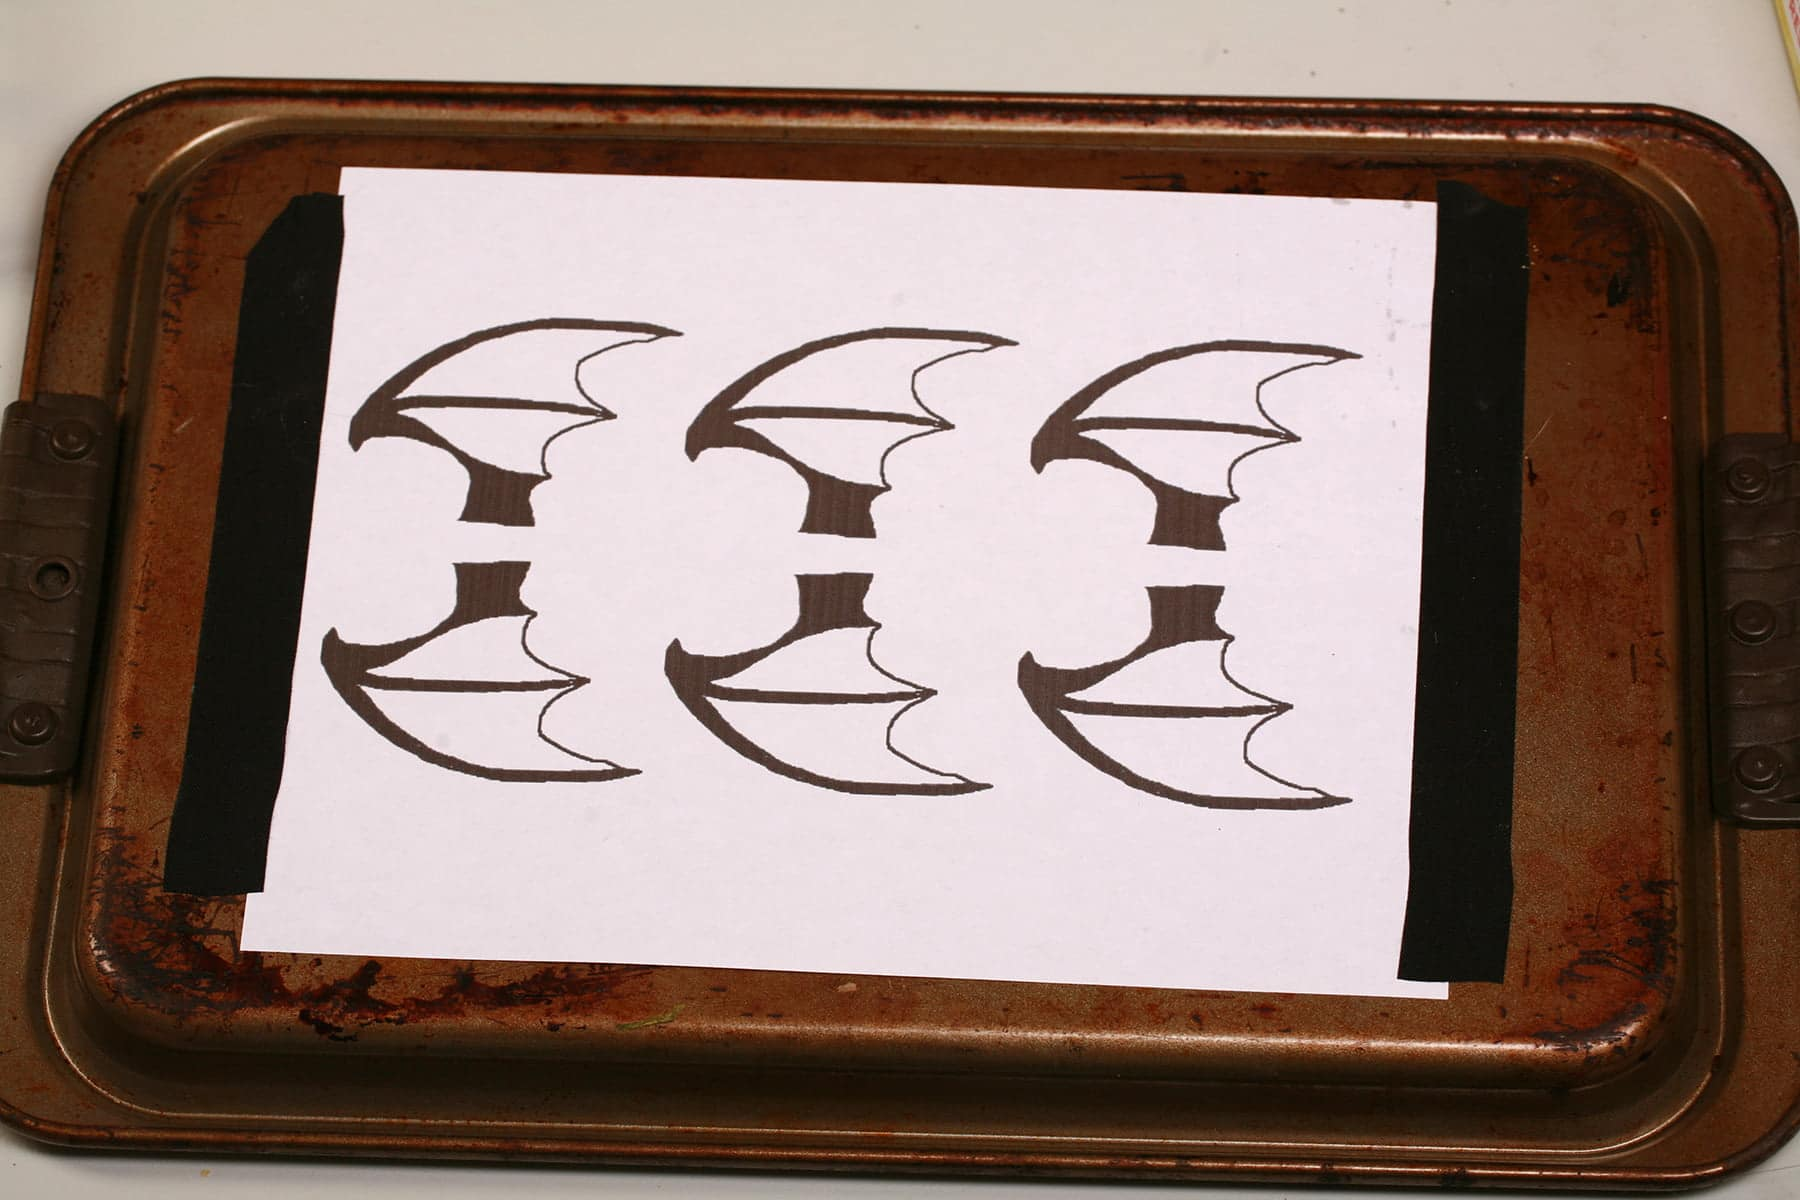 A printout of 3 pairs of bat wings are taped onto the back of a baking sheet.